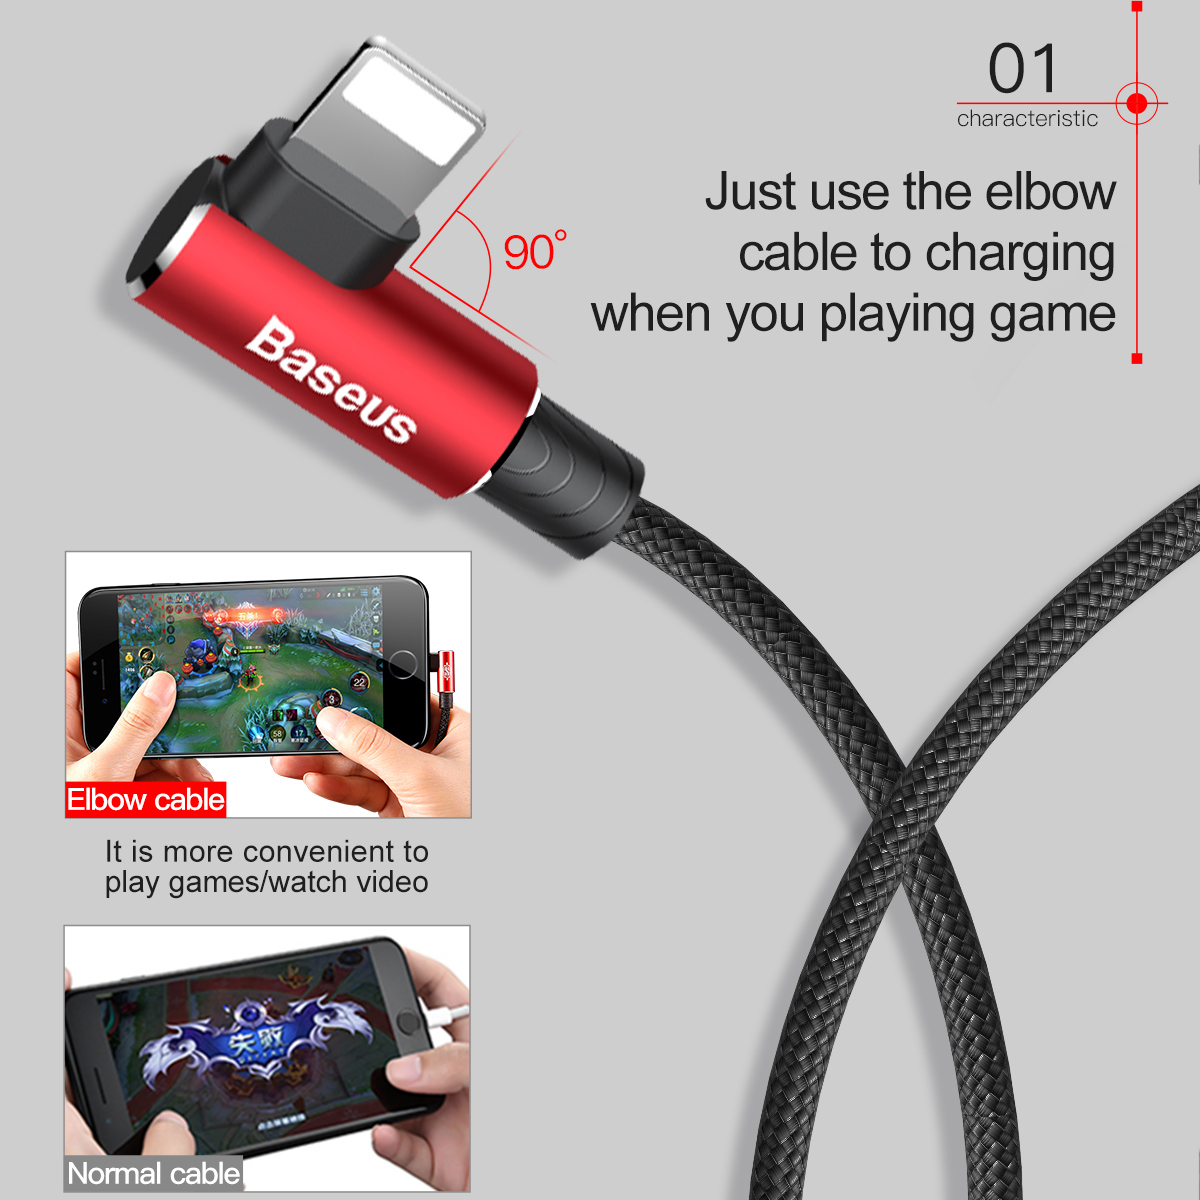 baseus 90 degree usb cable for iphone 5 6 6s 7 8 fast. Black Bedroom Furniture Sets. Home Design Ideas